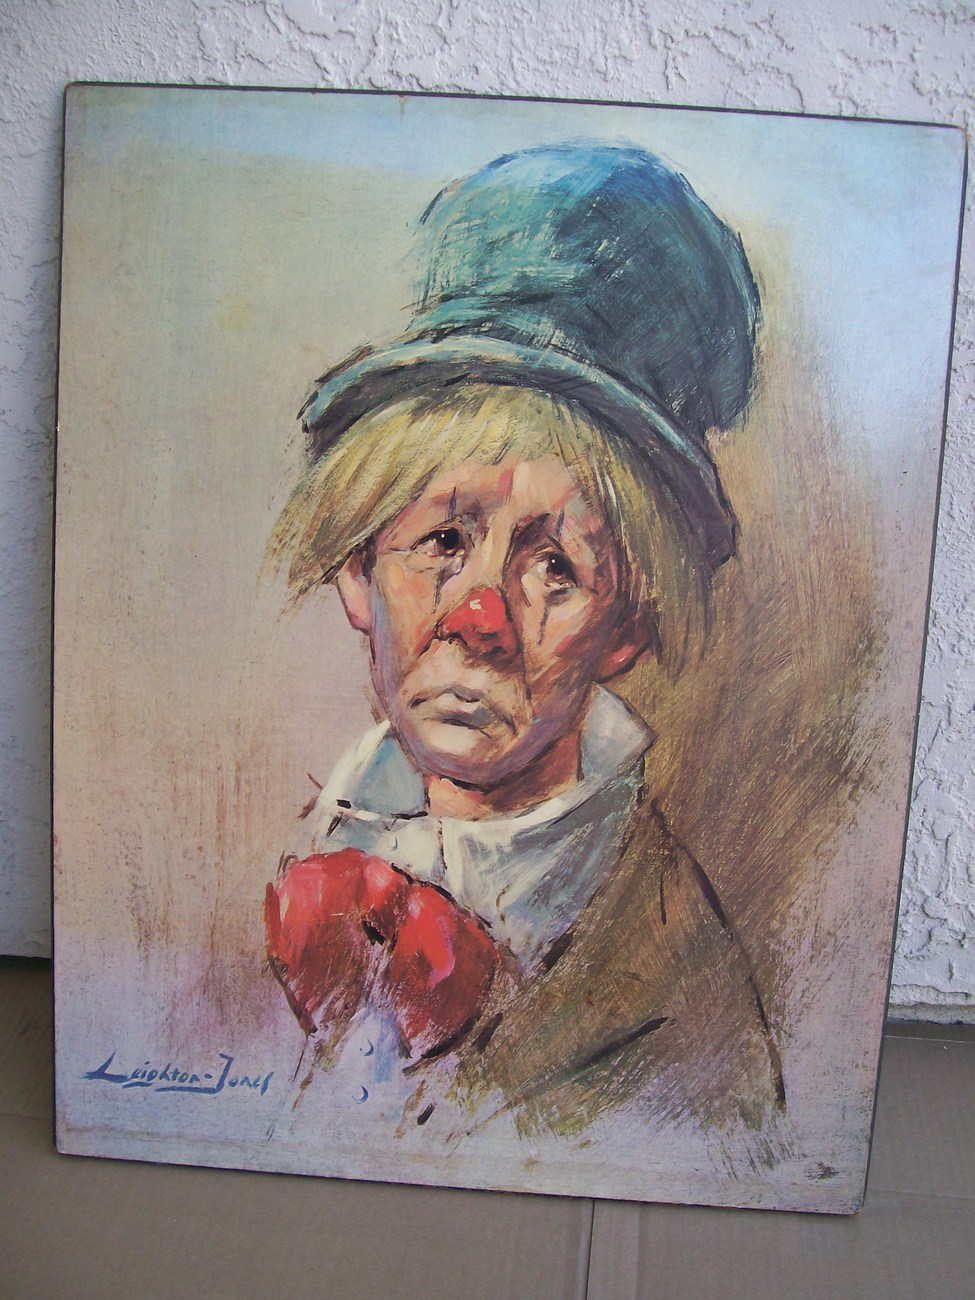 Leighton Jones Clown With The Top Hat Painting Lithograph Plaque